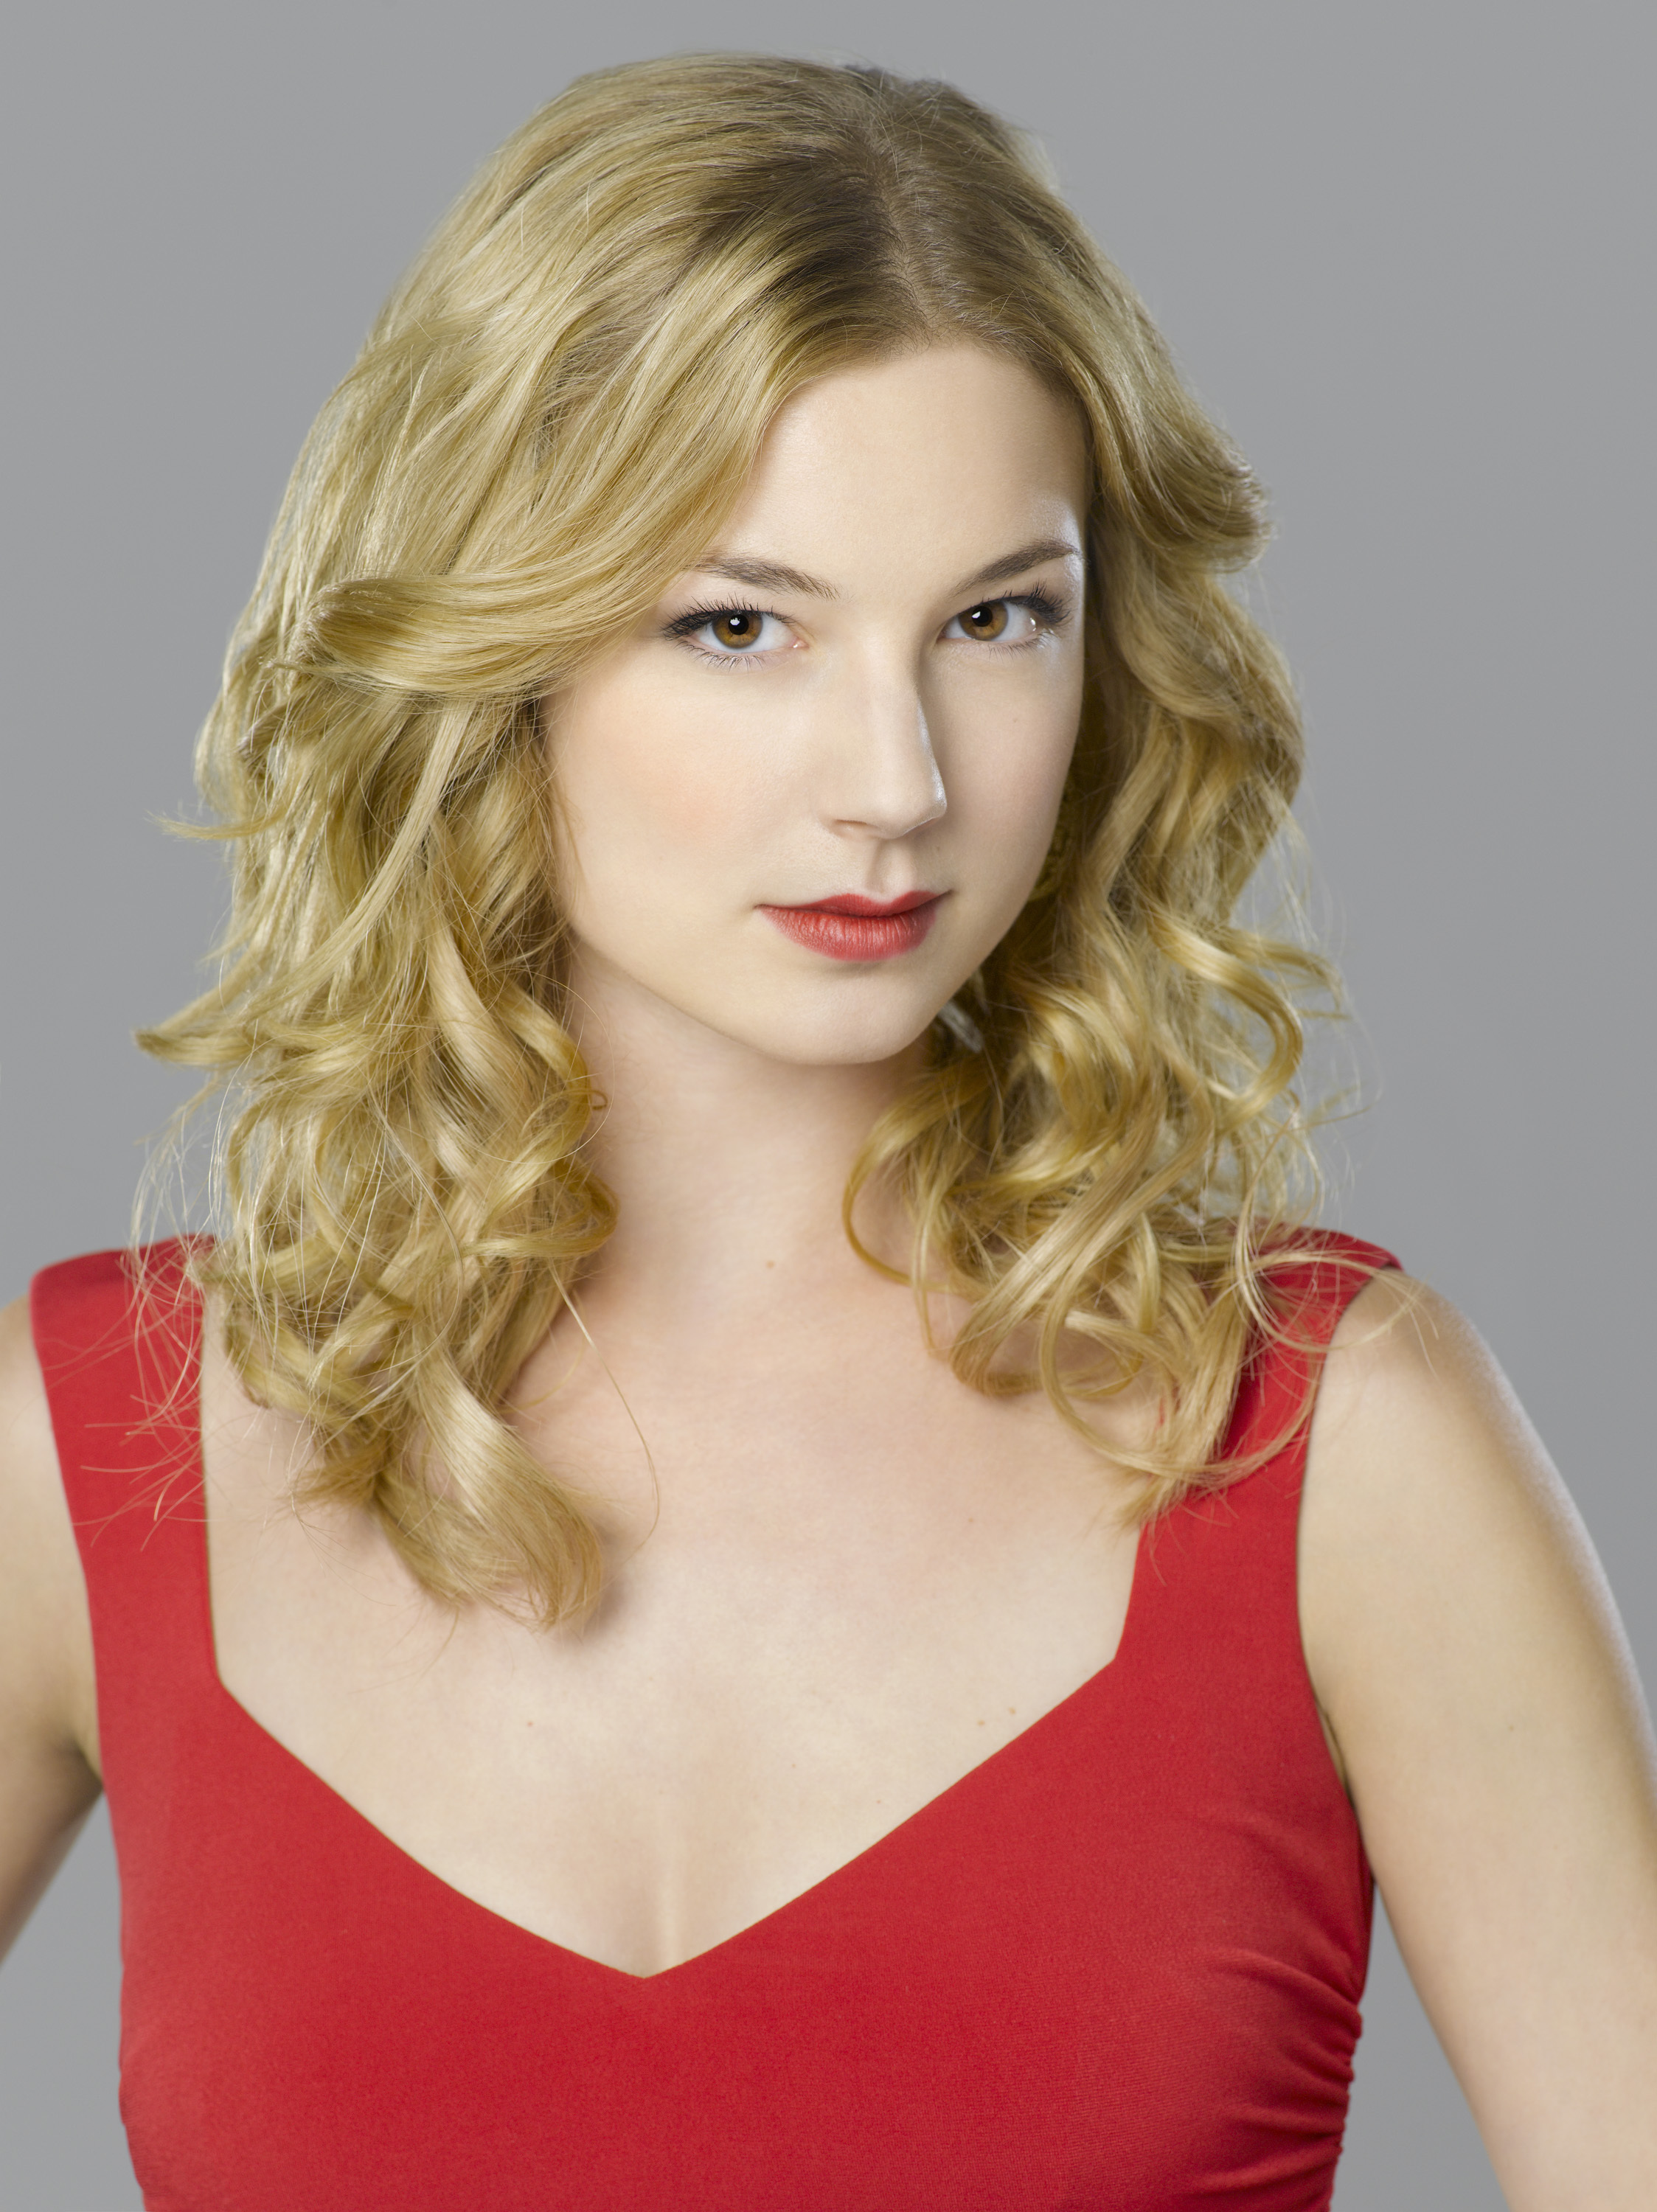 Emily VanCamp High Quality Wallpapers For Iphone